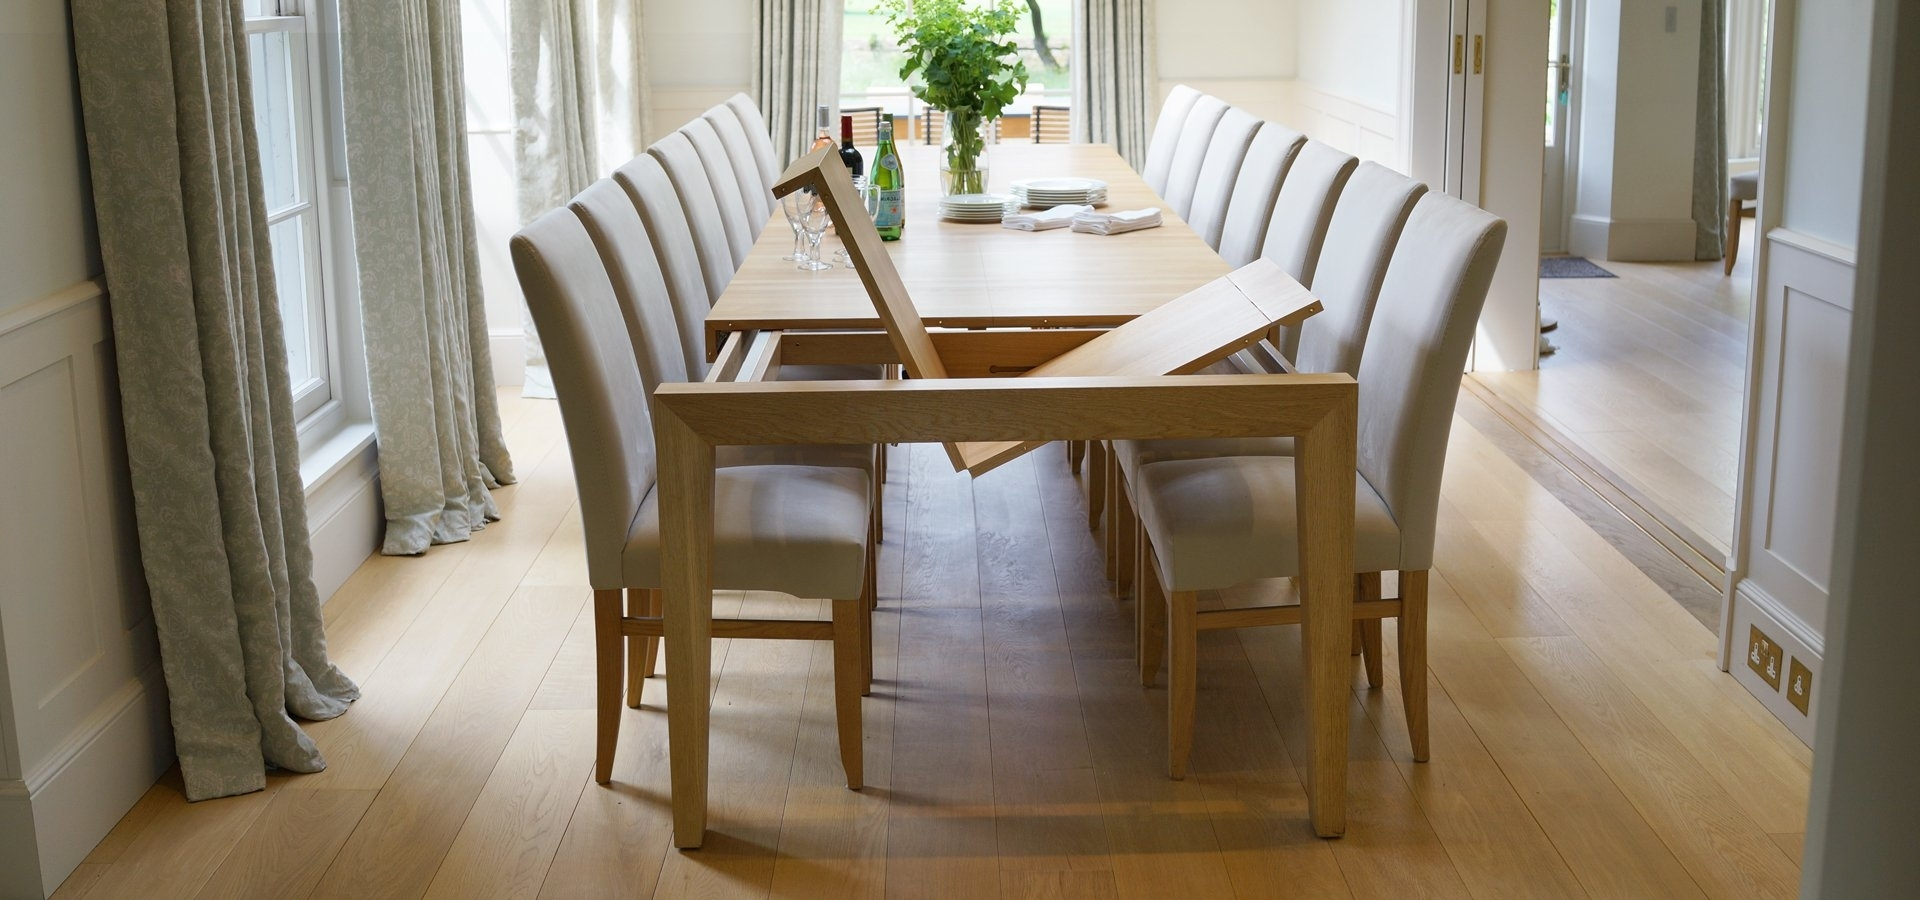 Extendable Dining Tables And Chairs With Regard To Well Liked Contemporary Dining Tables & Furnitureberrydesign (View 4 of 25)